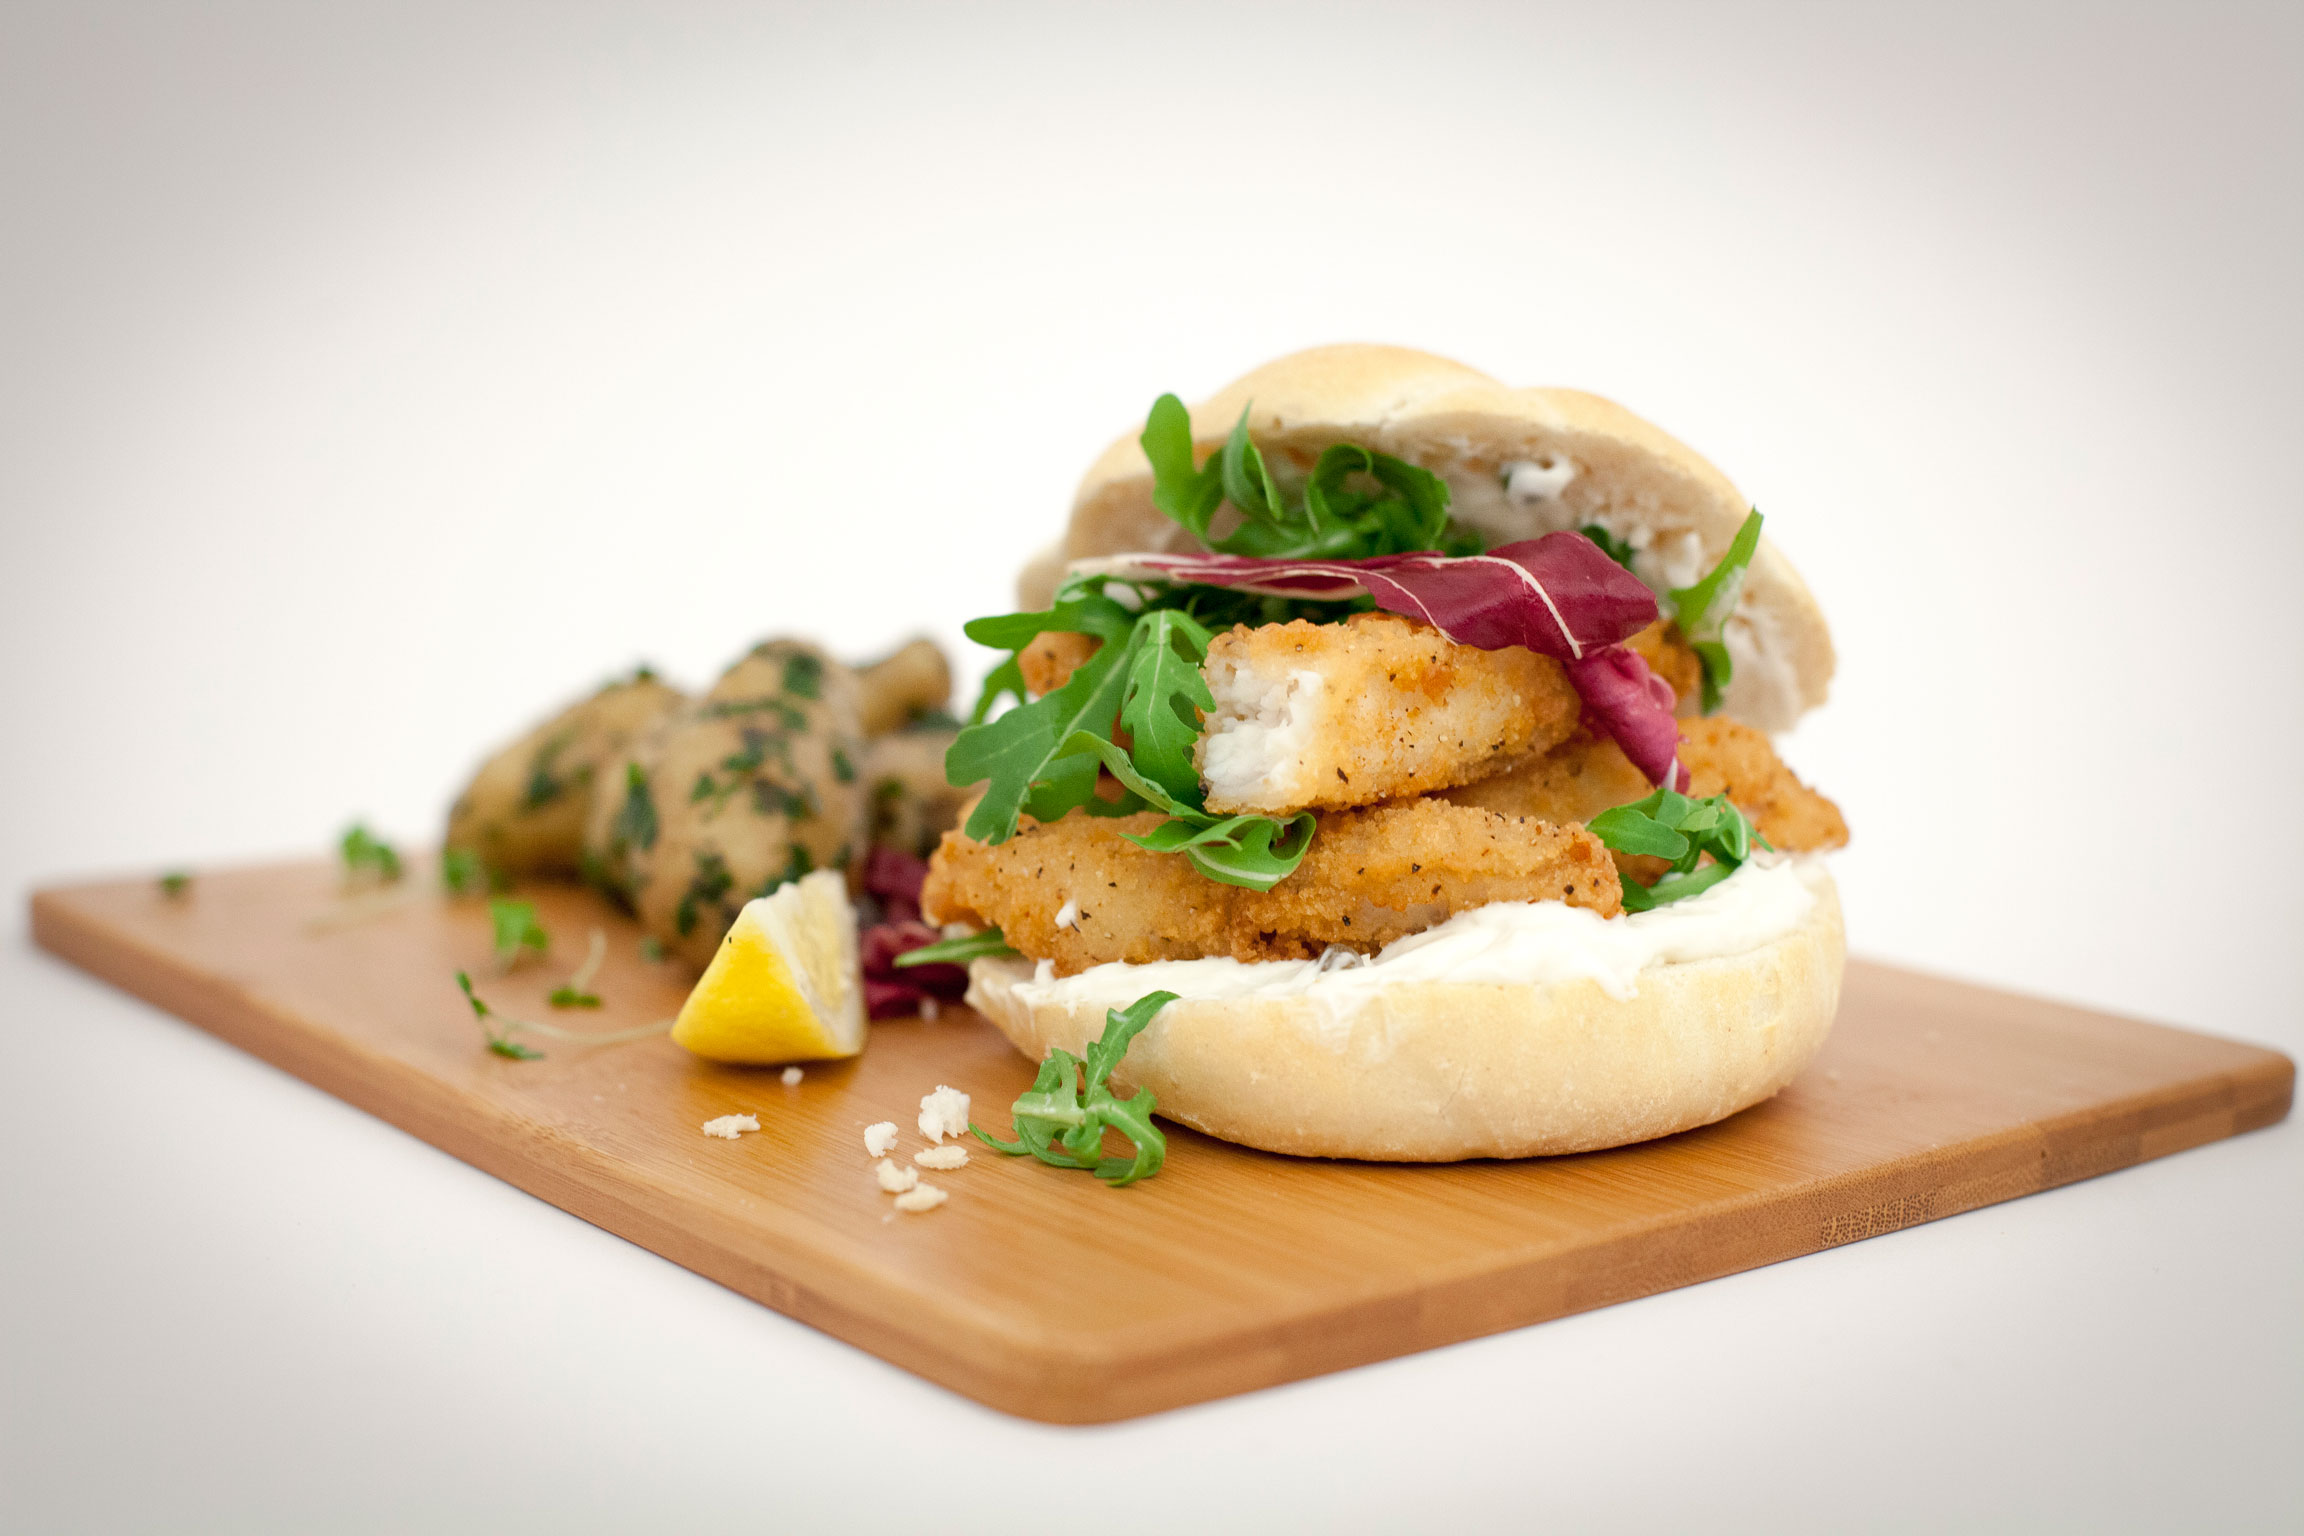 Whitby Seafoods mega sandwich, which is making me hungry.